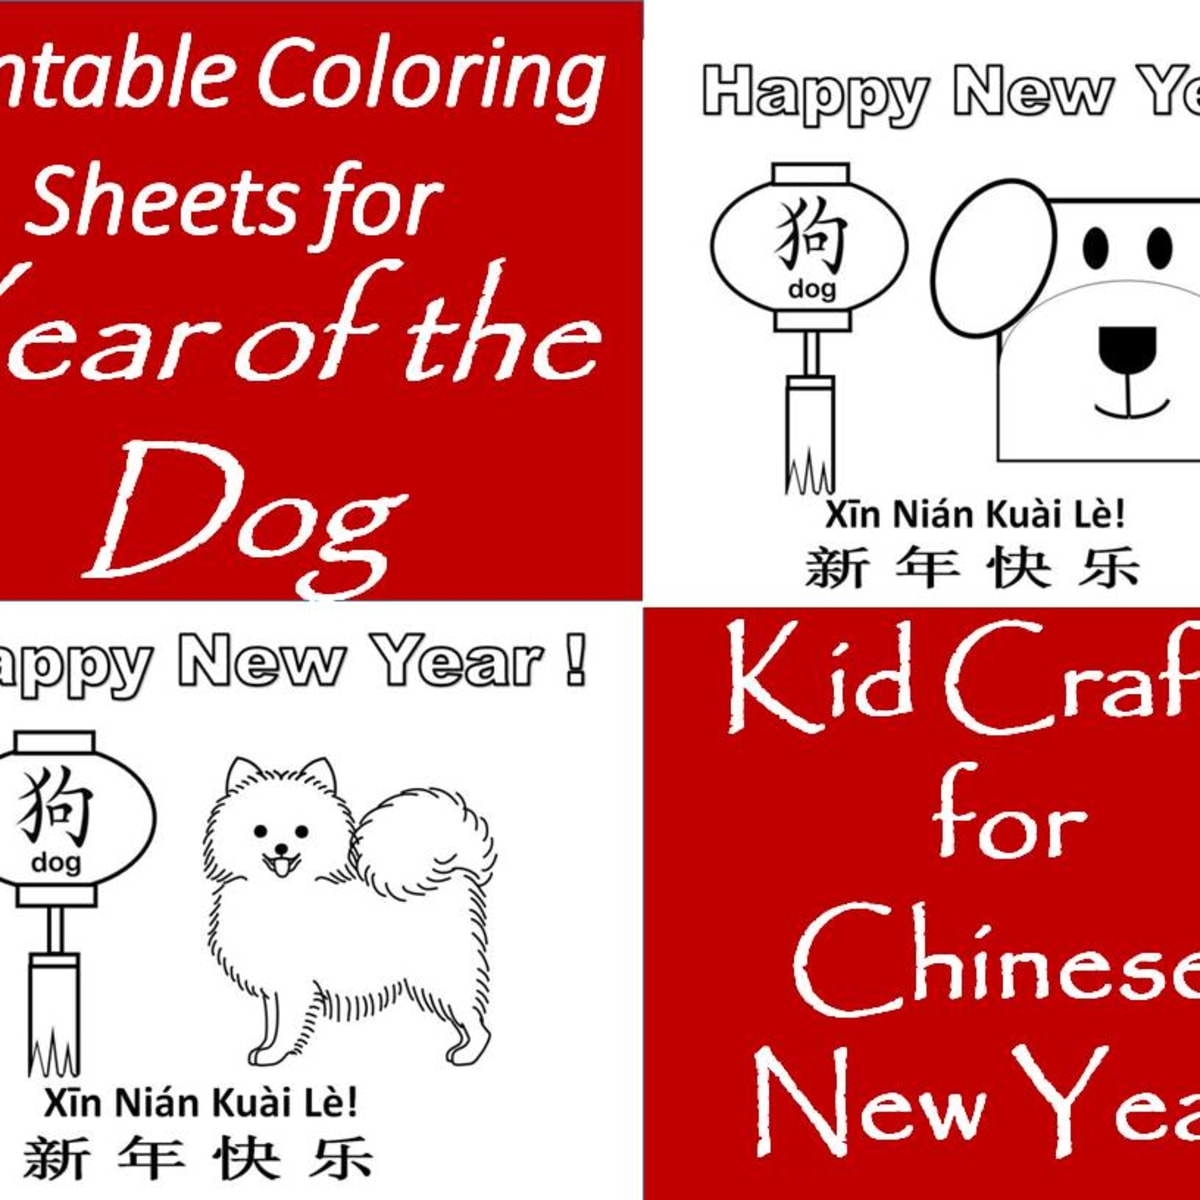 Printable Coloring Pages For Year Of The Dog Kid Crafts For Chinese New Year Holidappy Celebrations